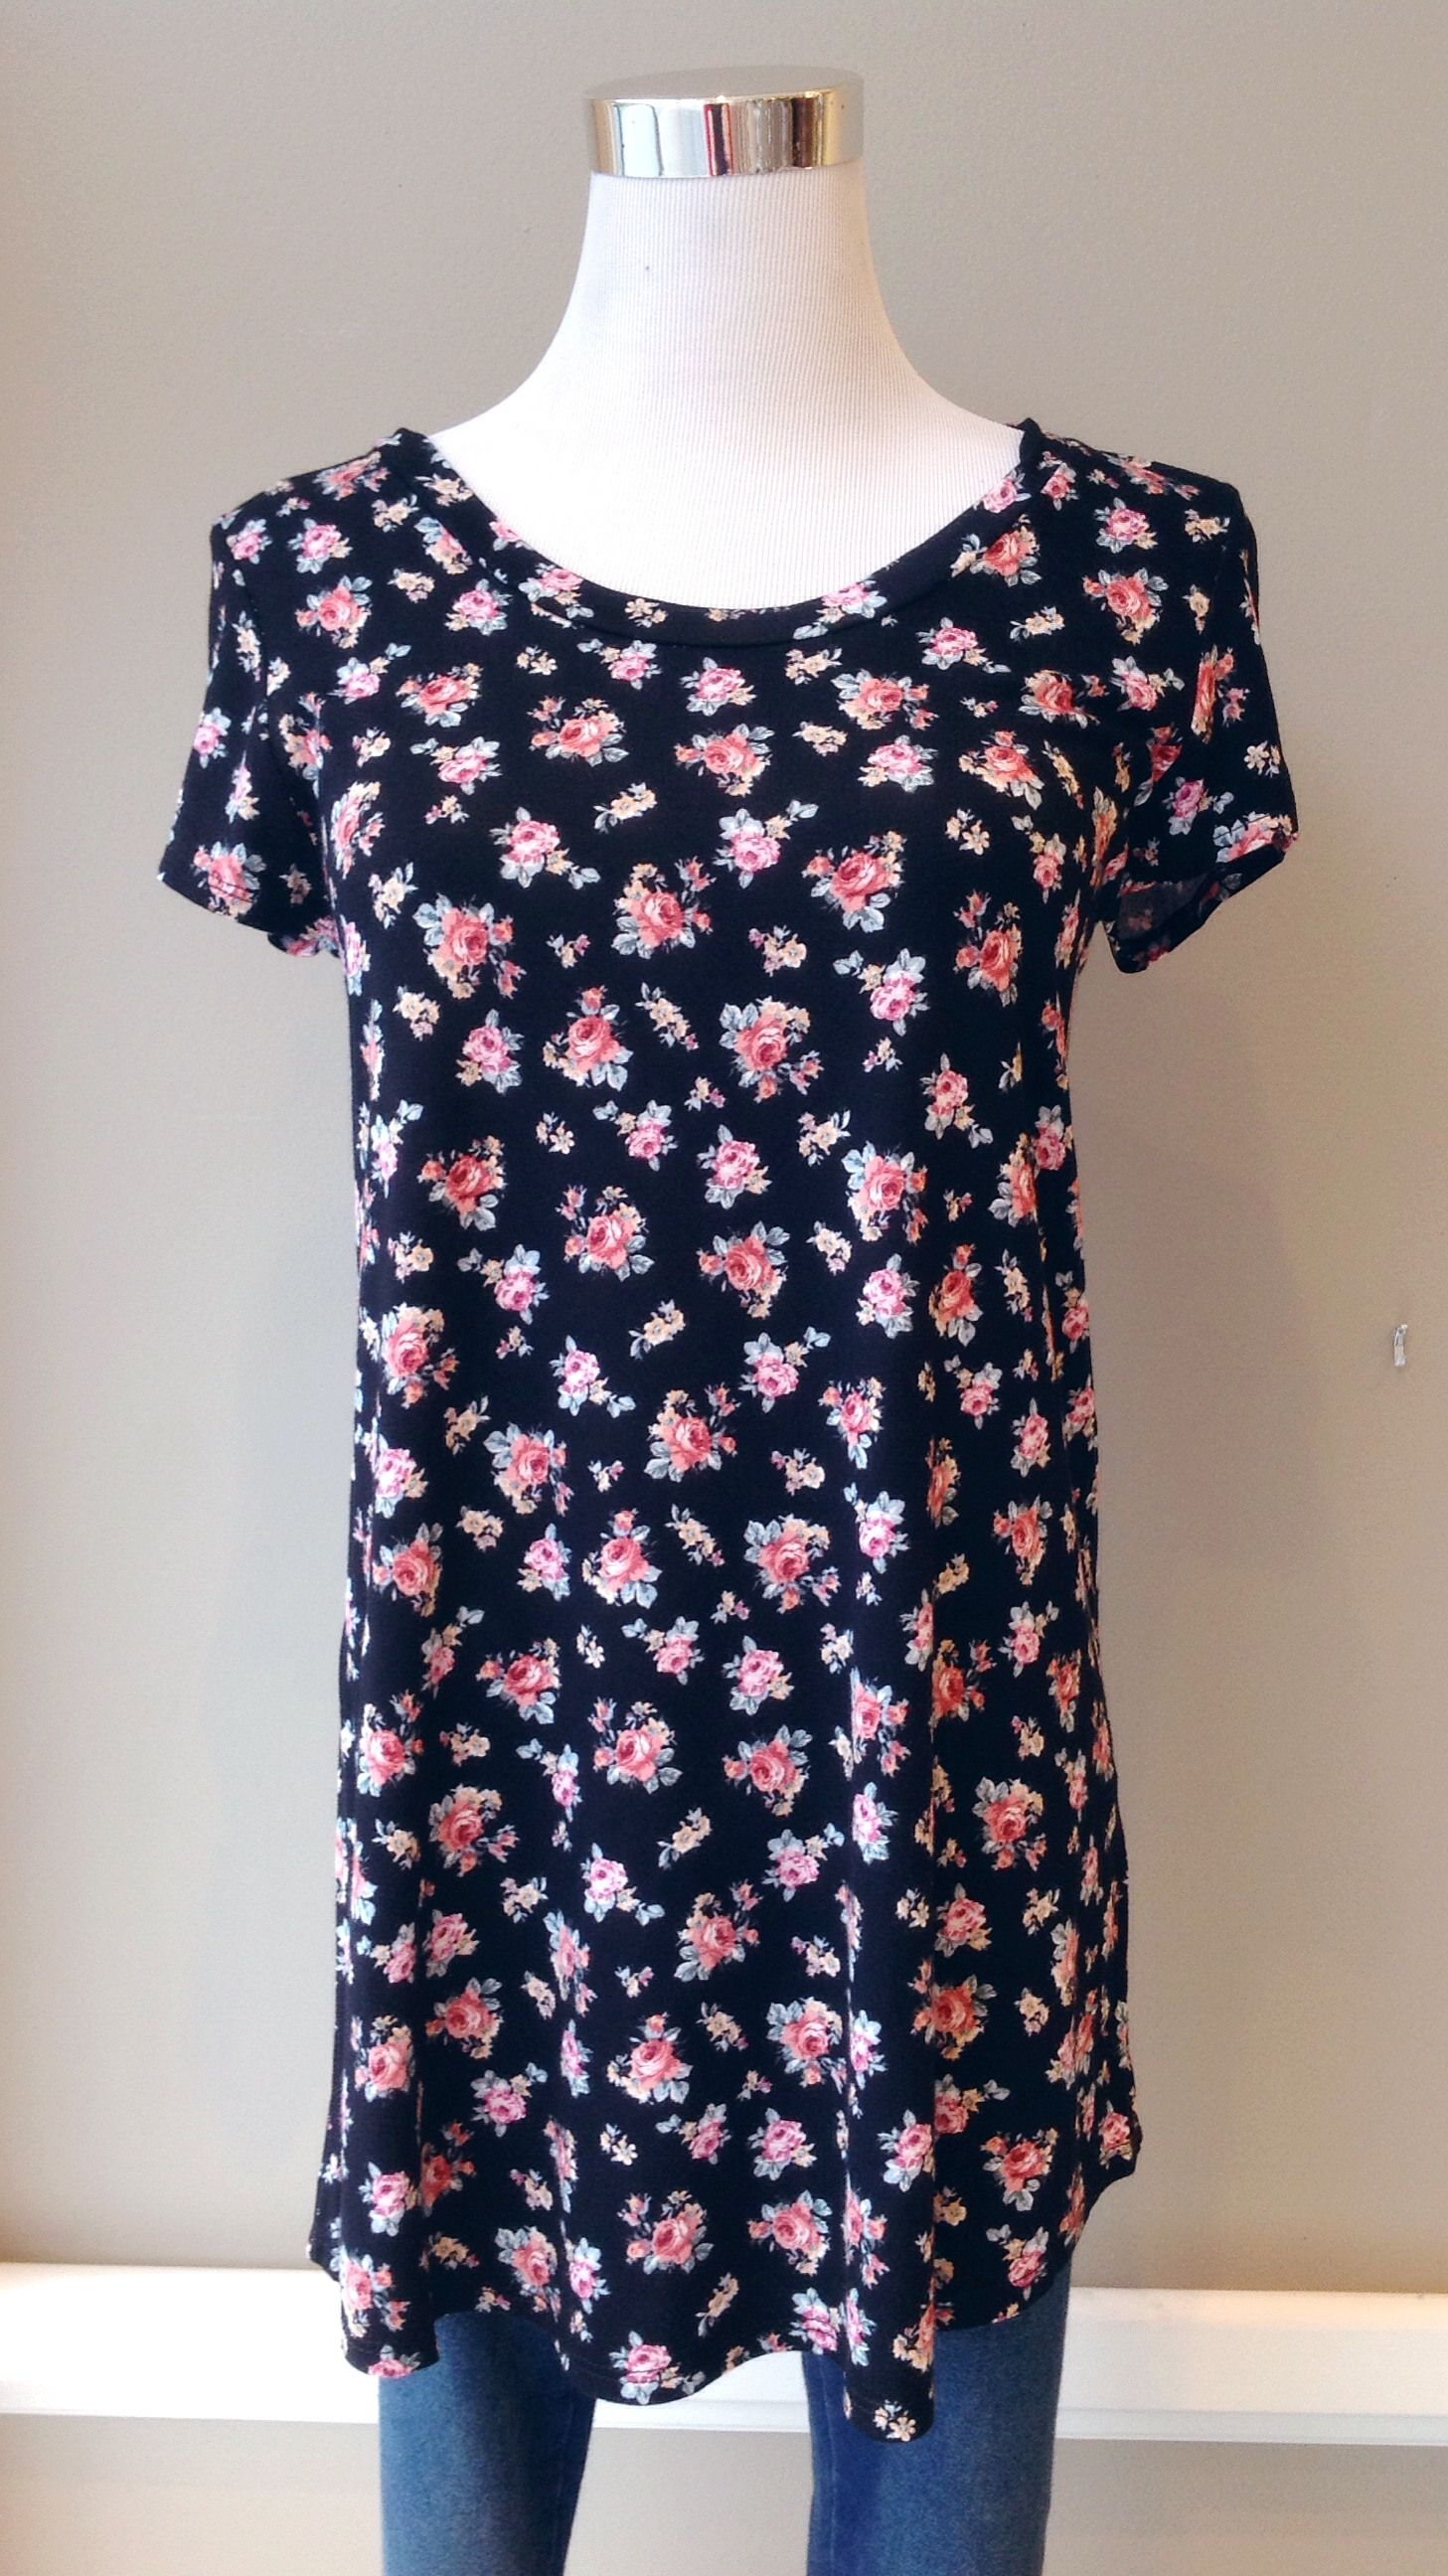 Long floral tee in black/pink floral, $26